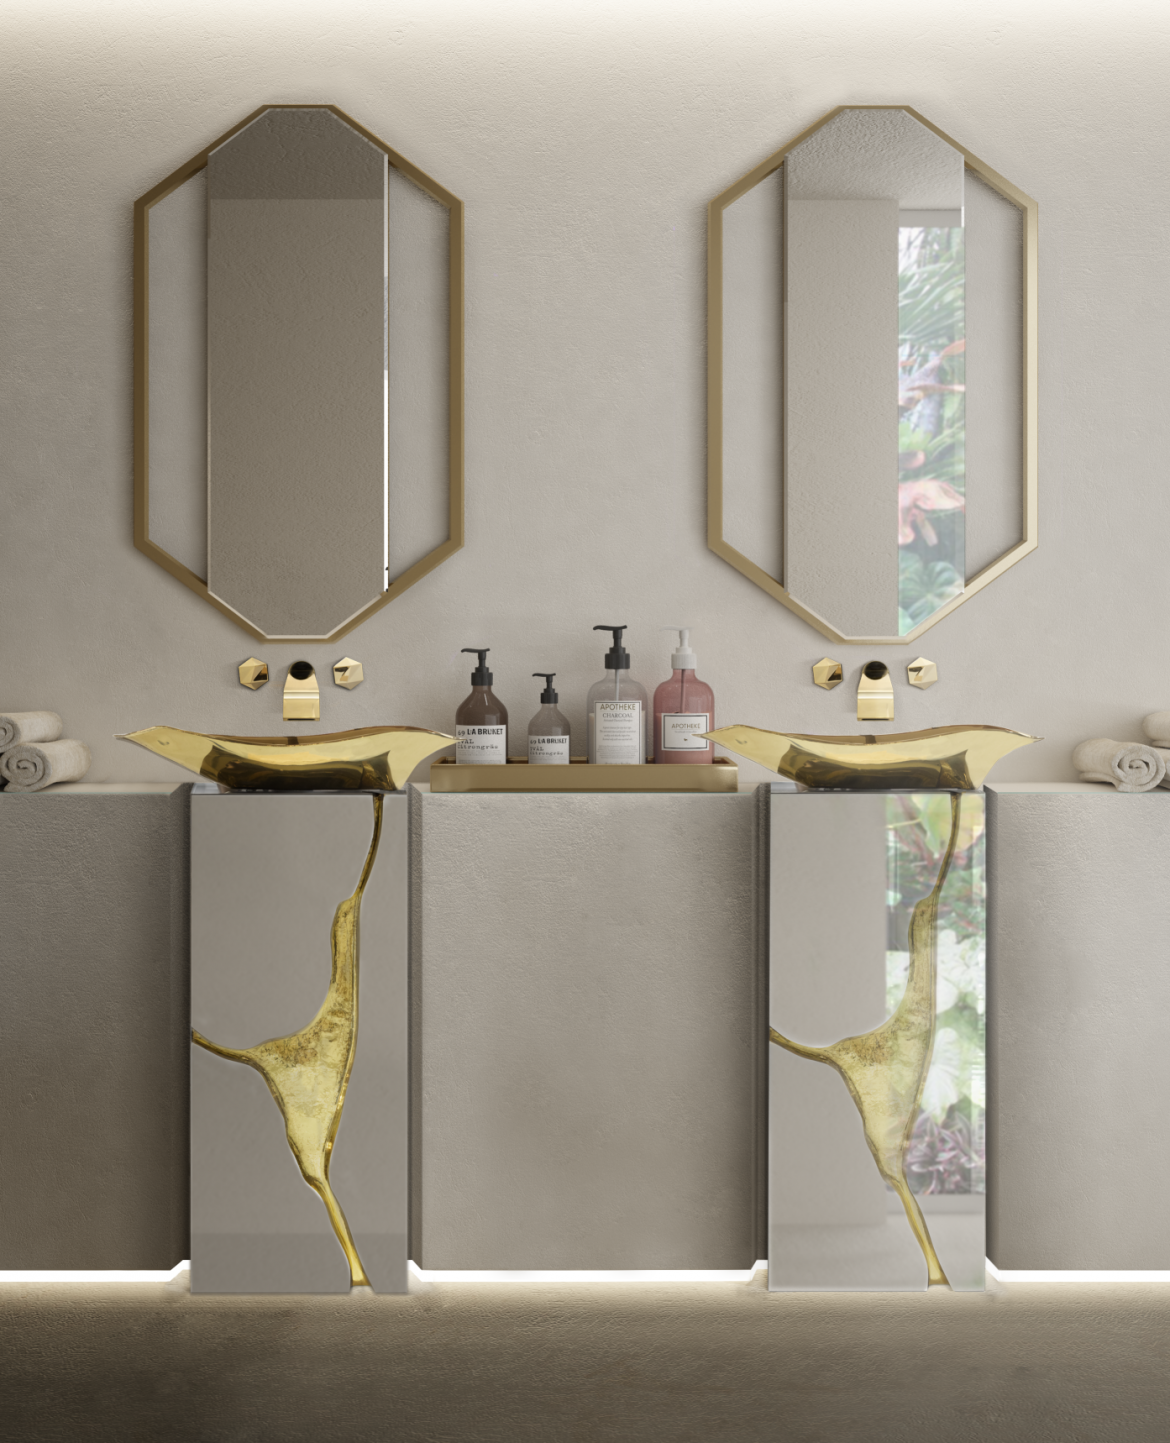 2020 Spring Interior Design Trends: Colors, Textures and Patterns 2 2020 spring 2020 Spring Interior Design Trends: Colors, Textures and Patterns MV LAPIAZ FREESTAND GOLD 2 1